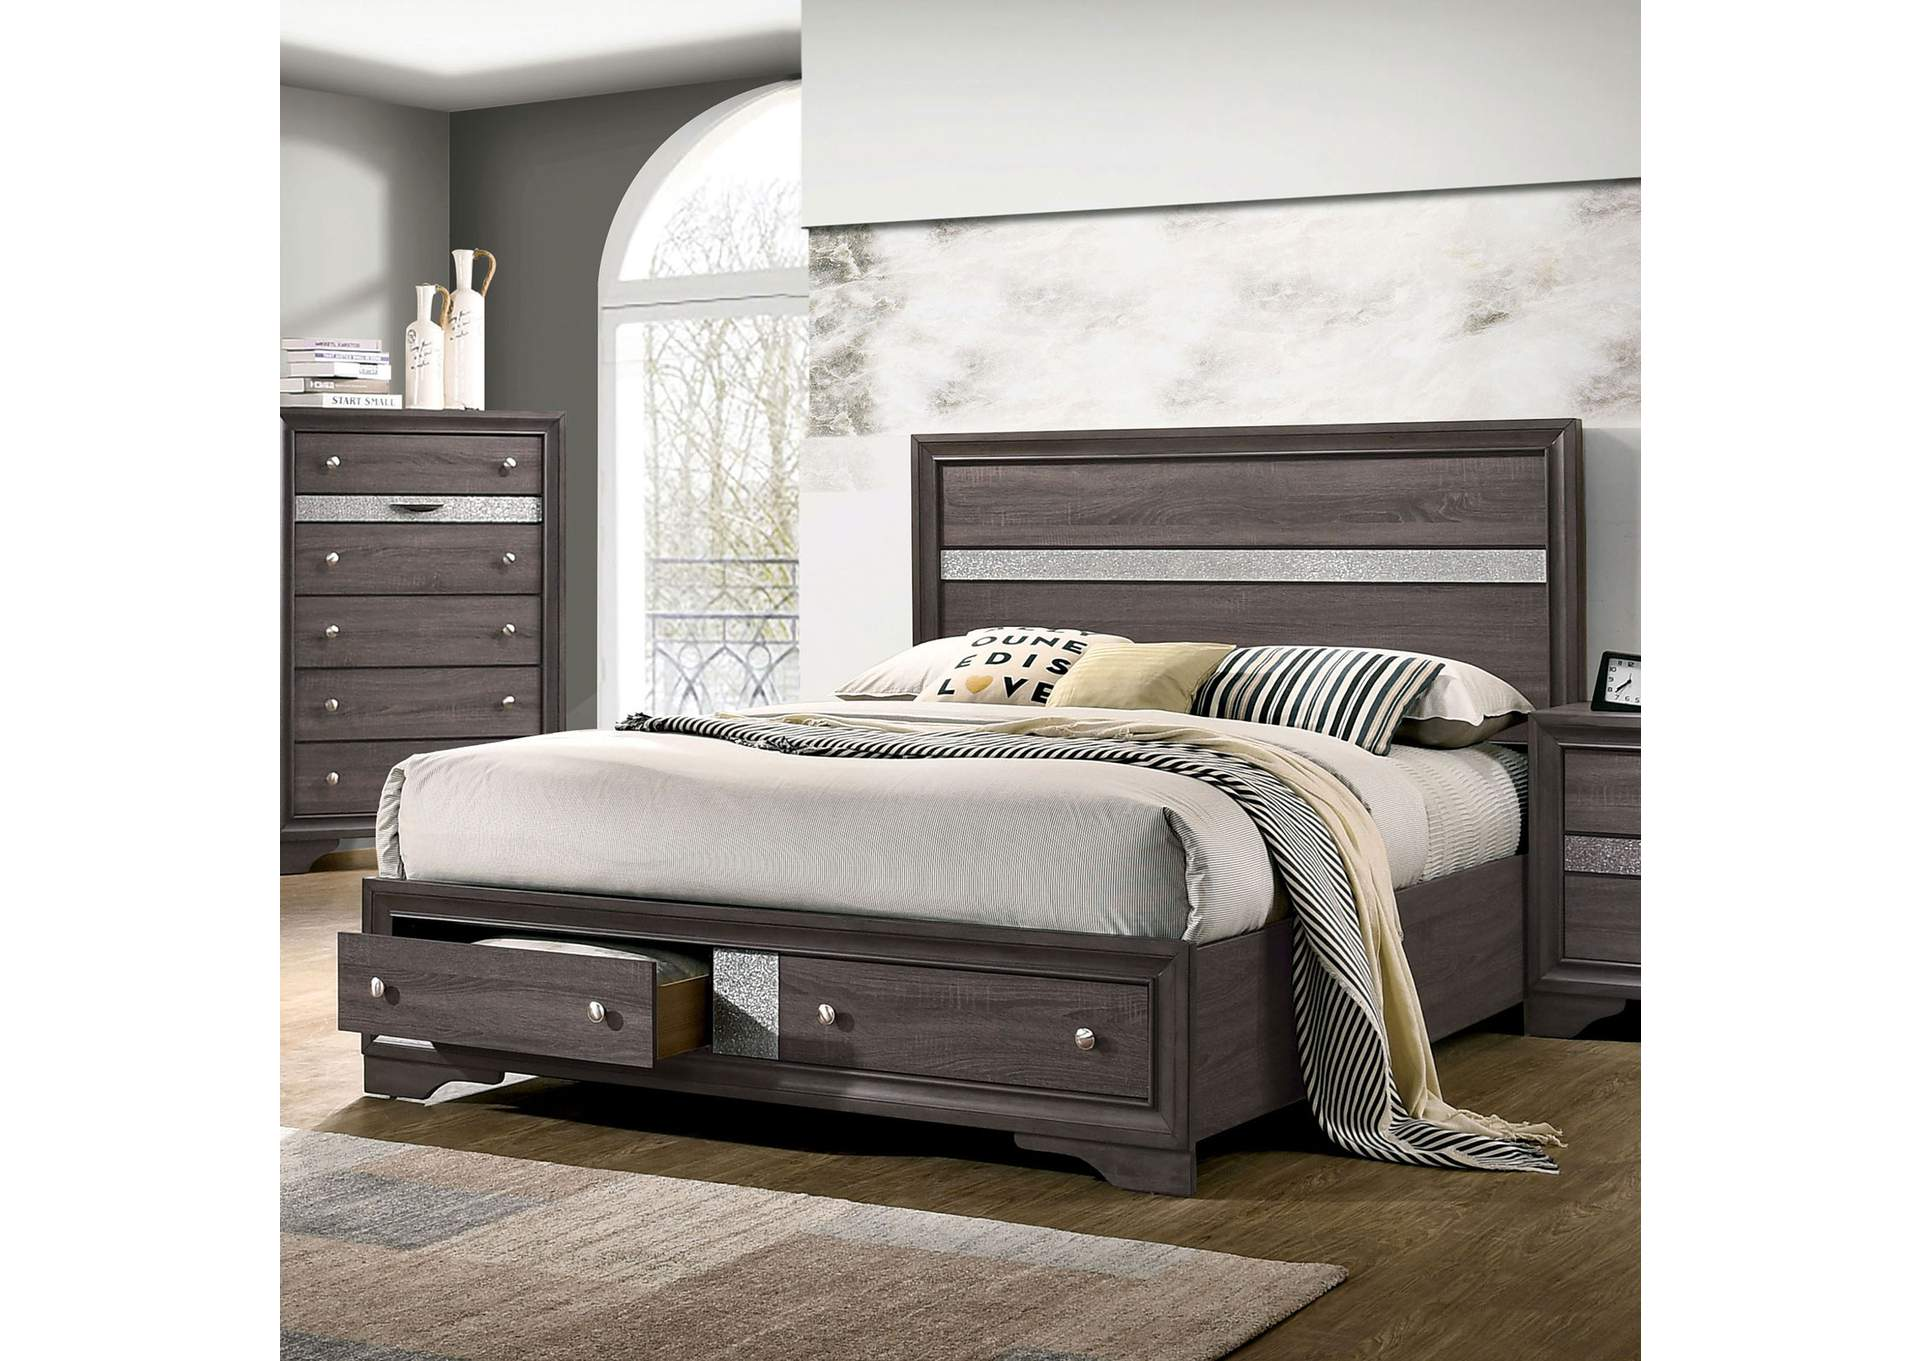 Chrissy Gray Eastern King Bed,Furniture of America